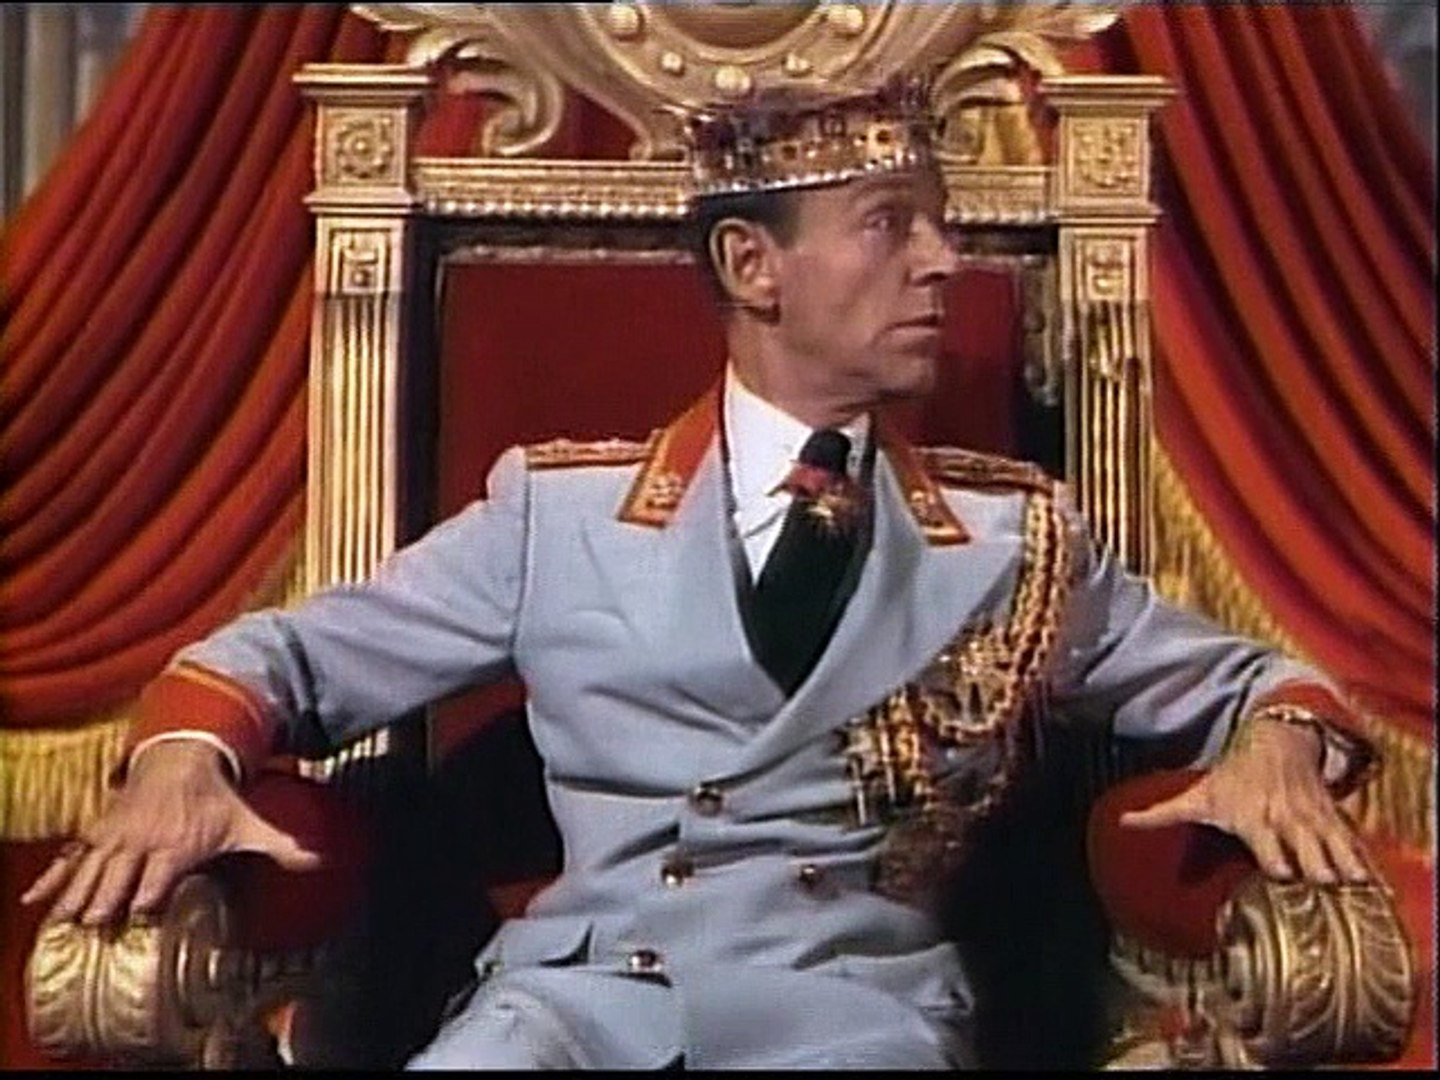 Royal Wedding (1951) - Fred Astaire, Jane Powell, Peter Lawford - Feature (Comedy, Musical)